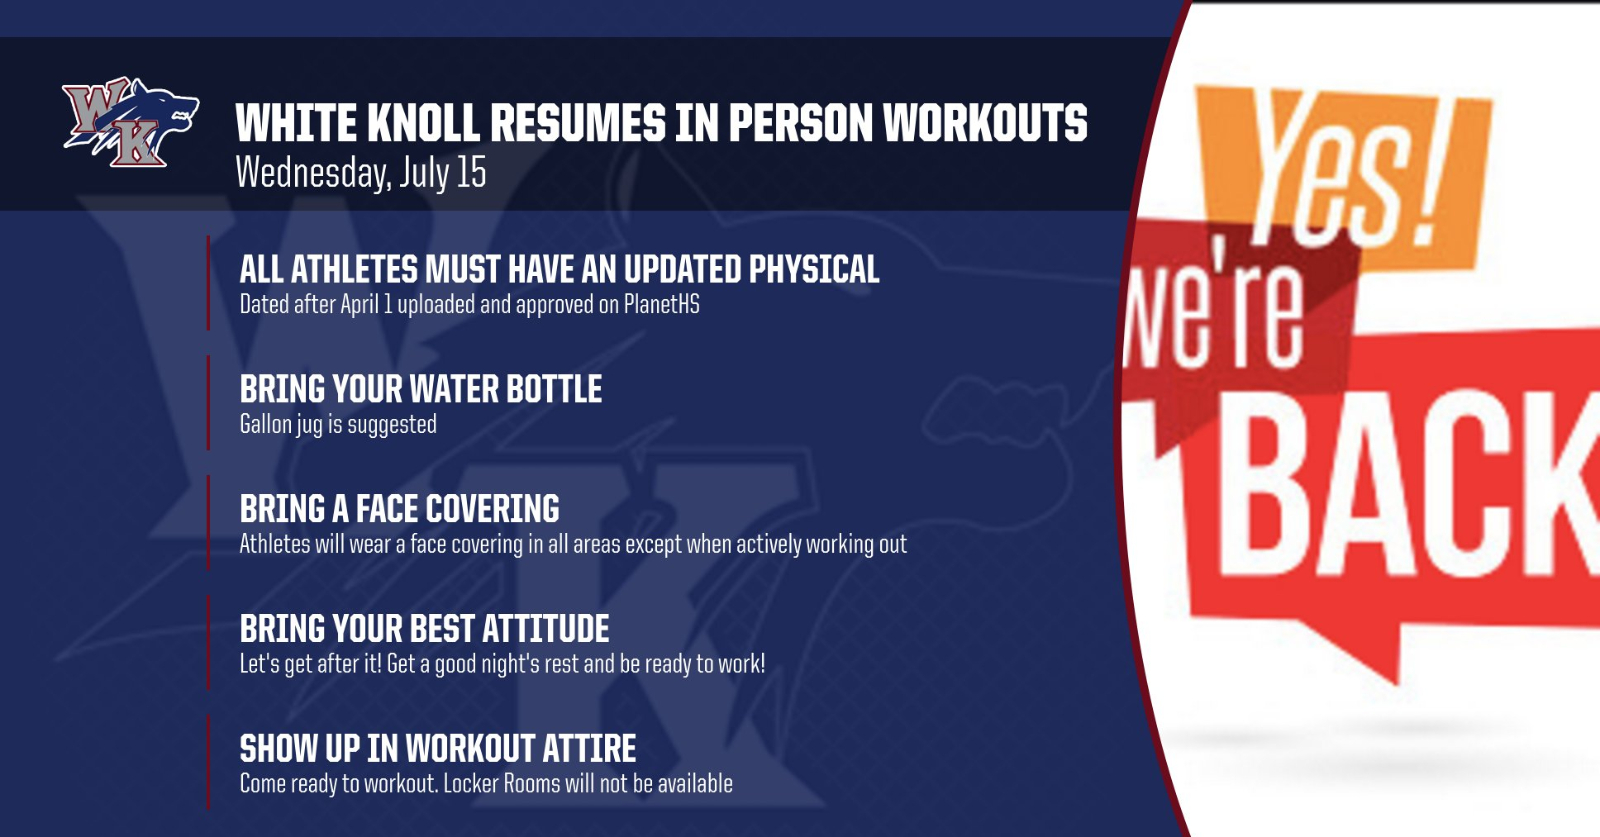 White Knoll Returns to In-Person Workouts